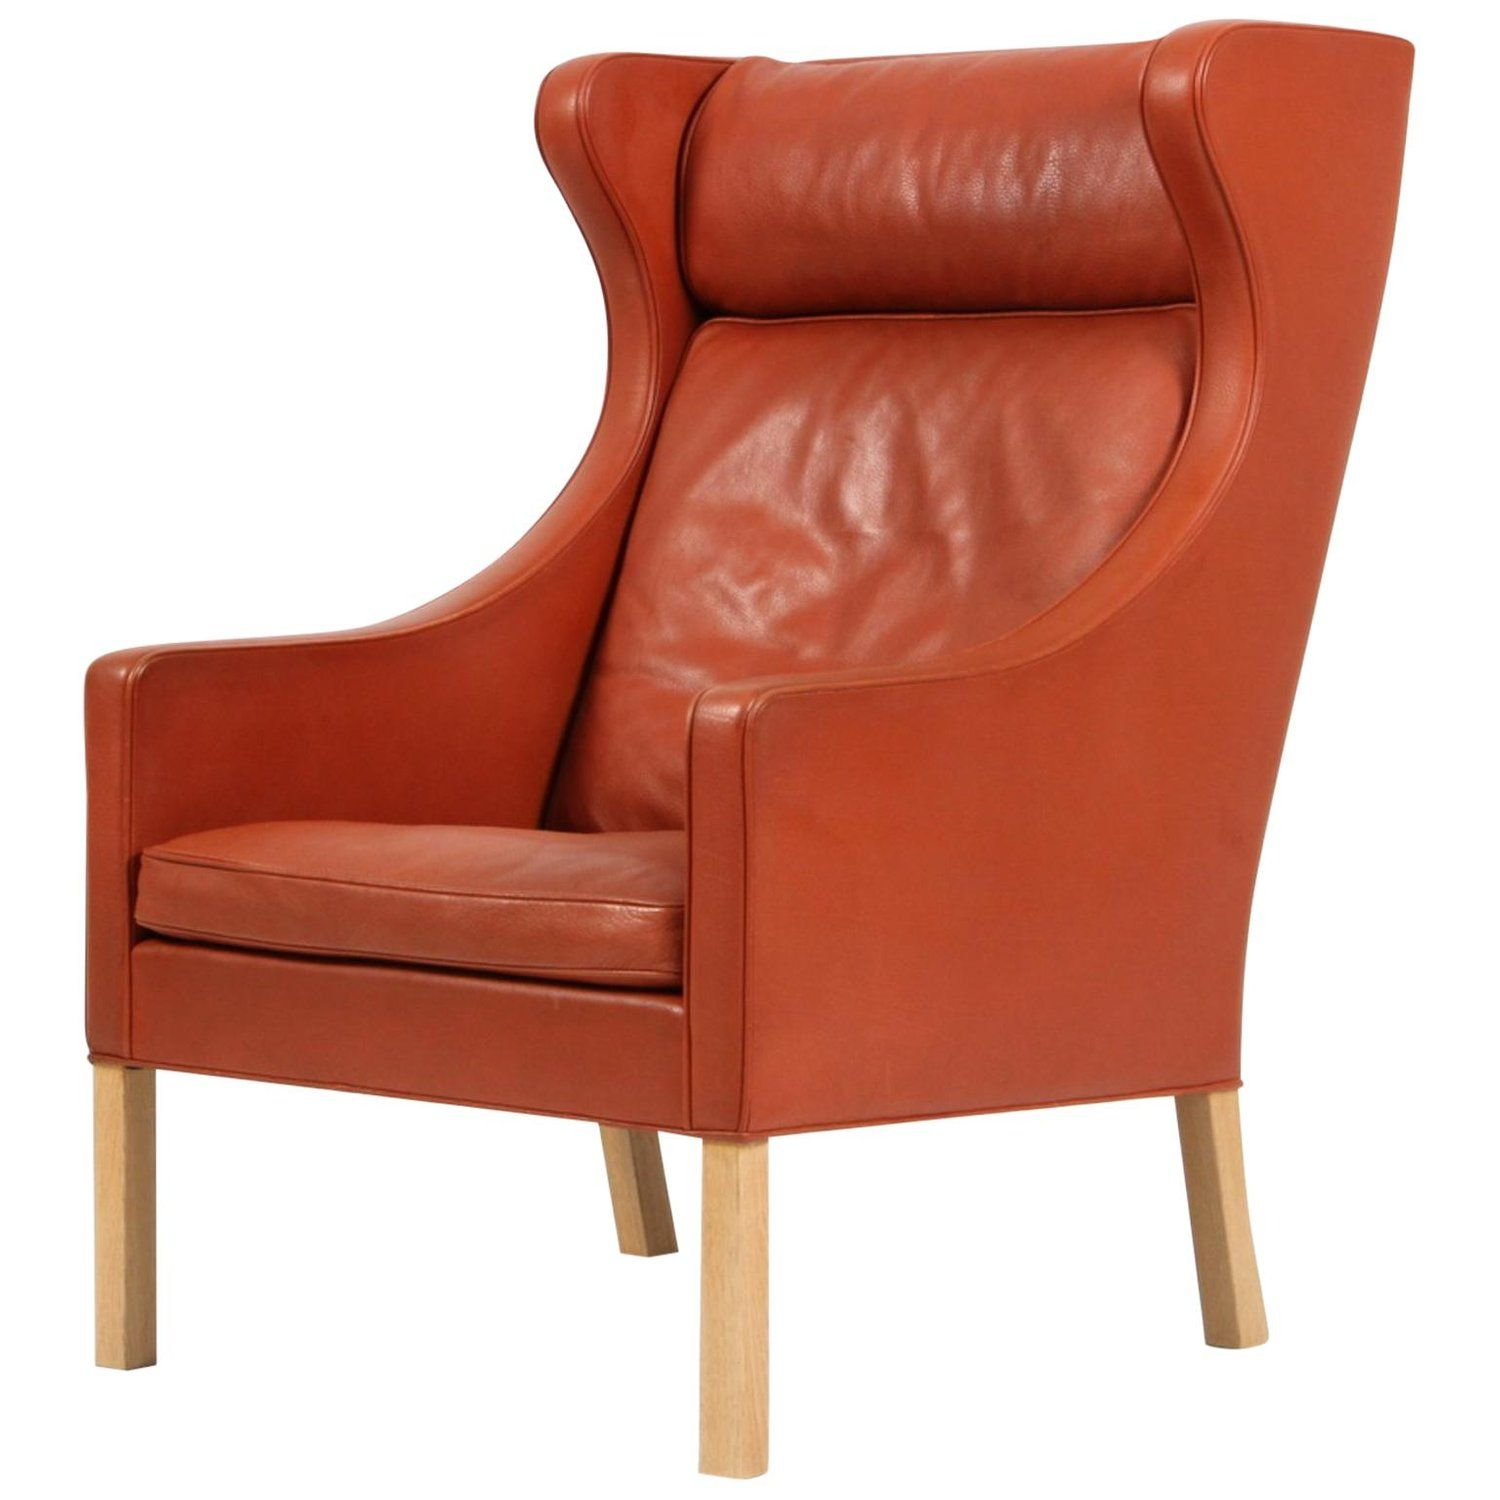 Børge Mogensen Wing Back Chair in Original cognac leather